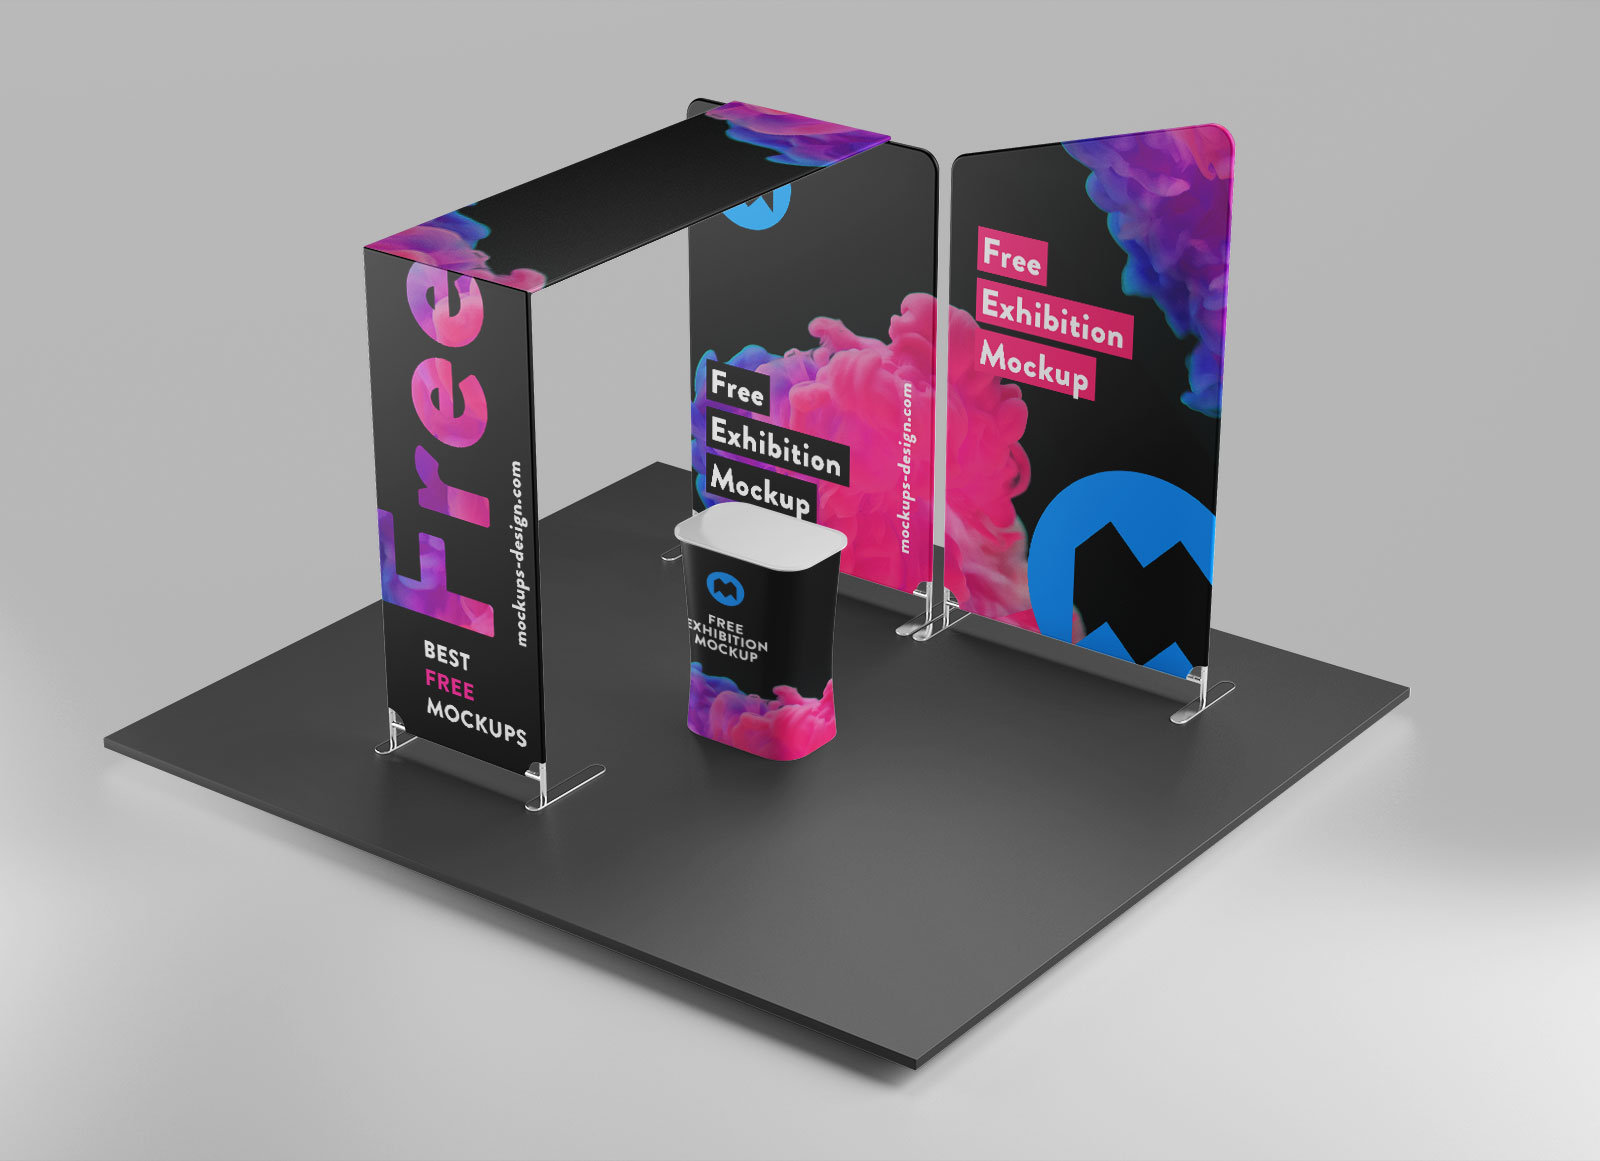 Free-Trade-Show-Exhibition-Display-Stand-Mockup-PSD-2